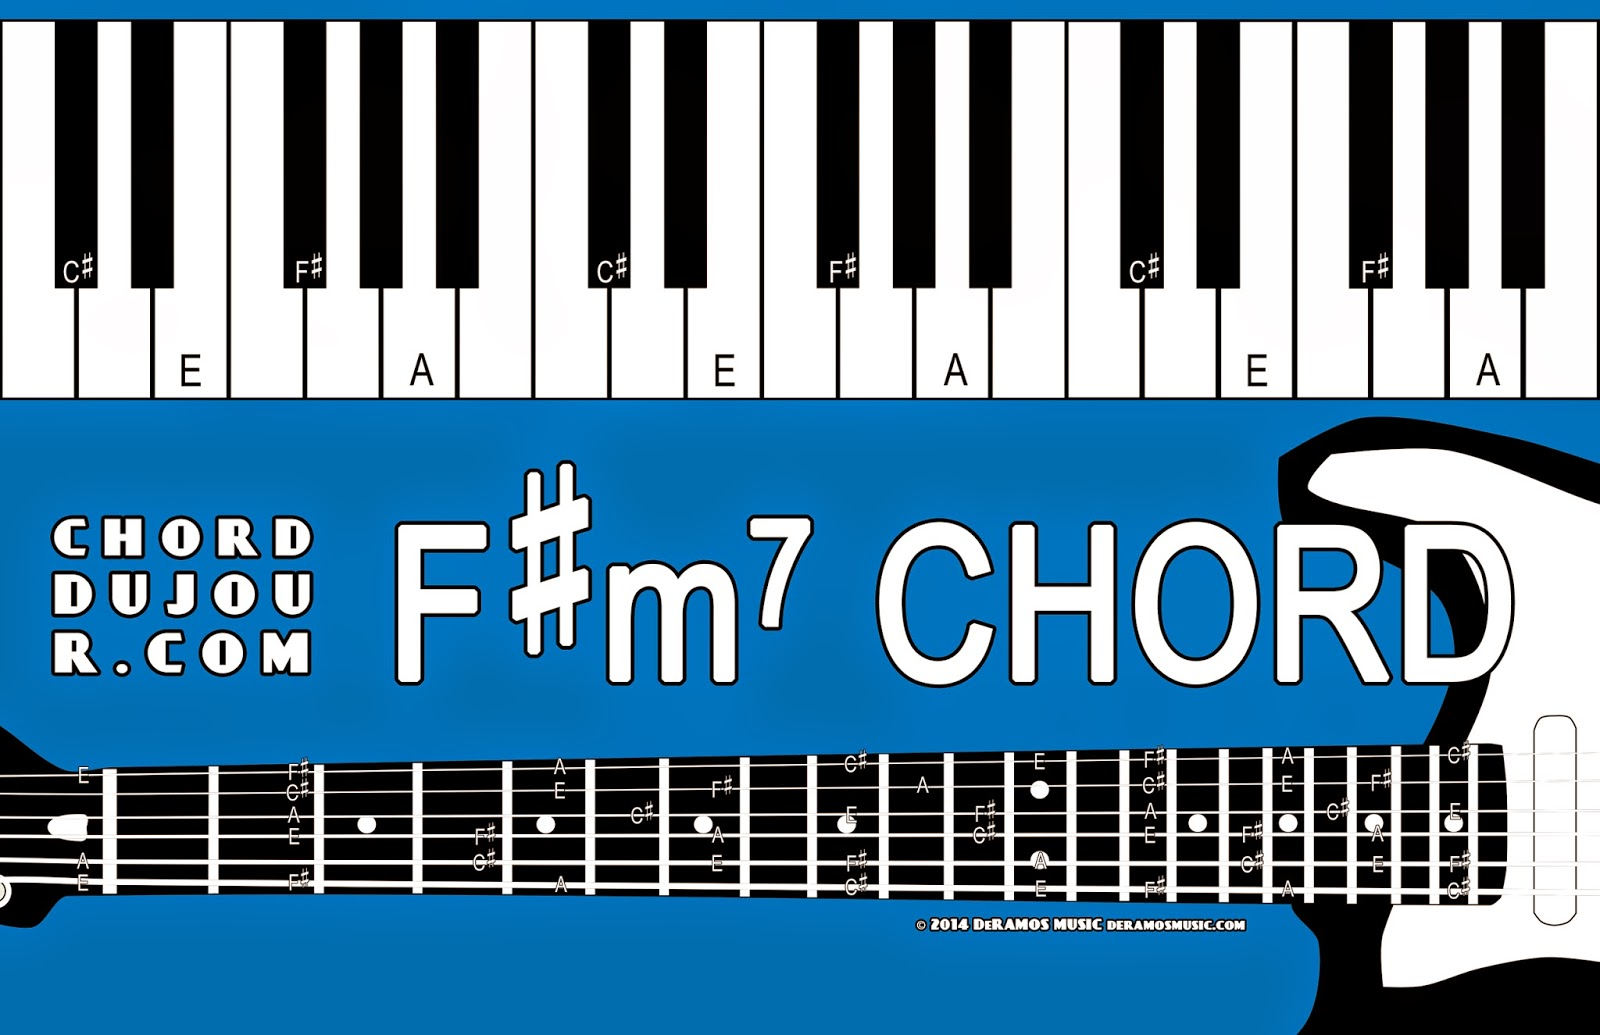 Chord du jour dictionary fm7 chord dictionary fm7 chord hexwebz Choice Image